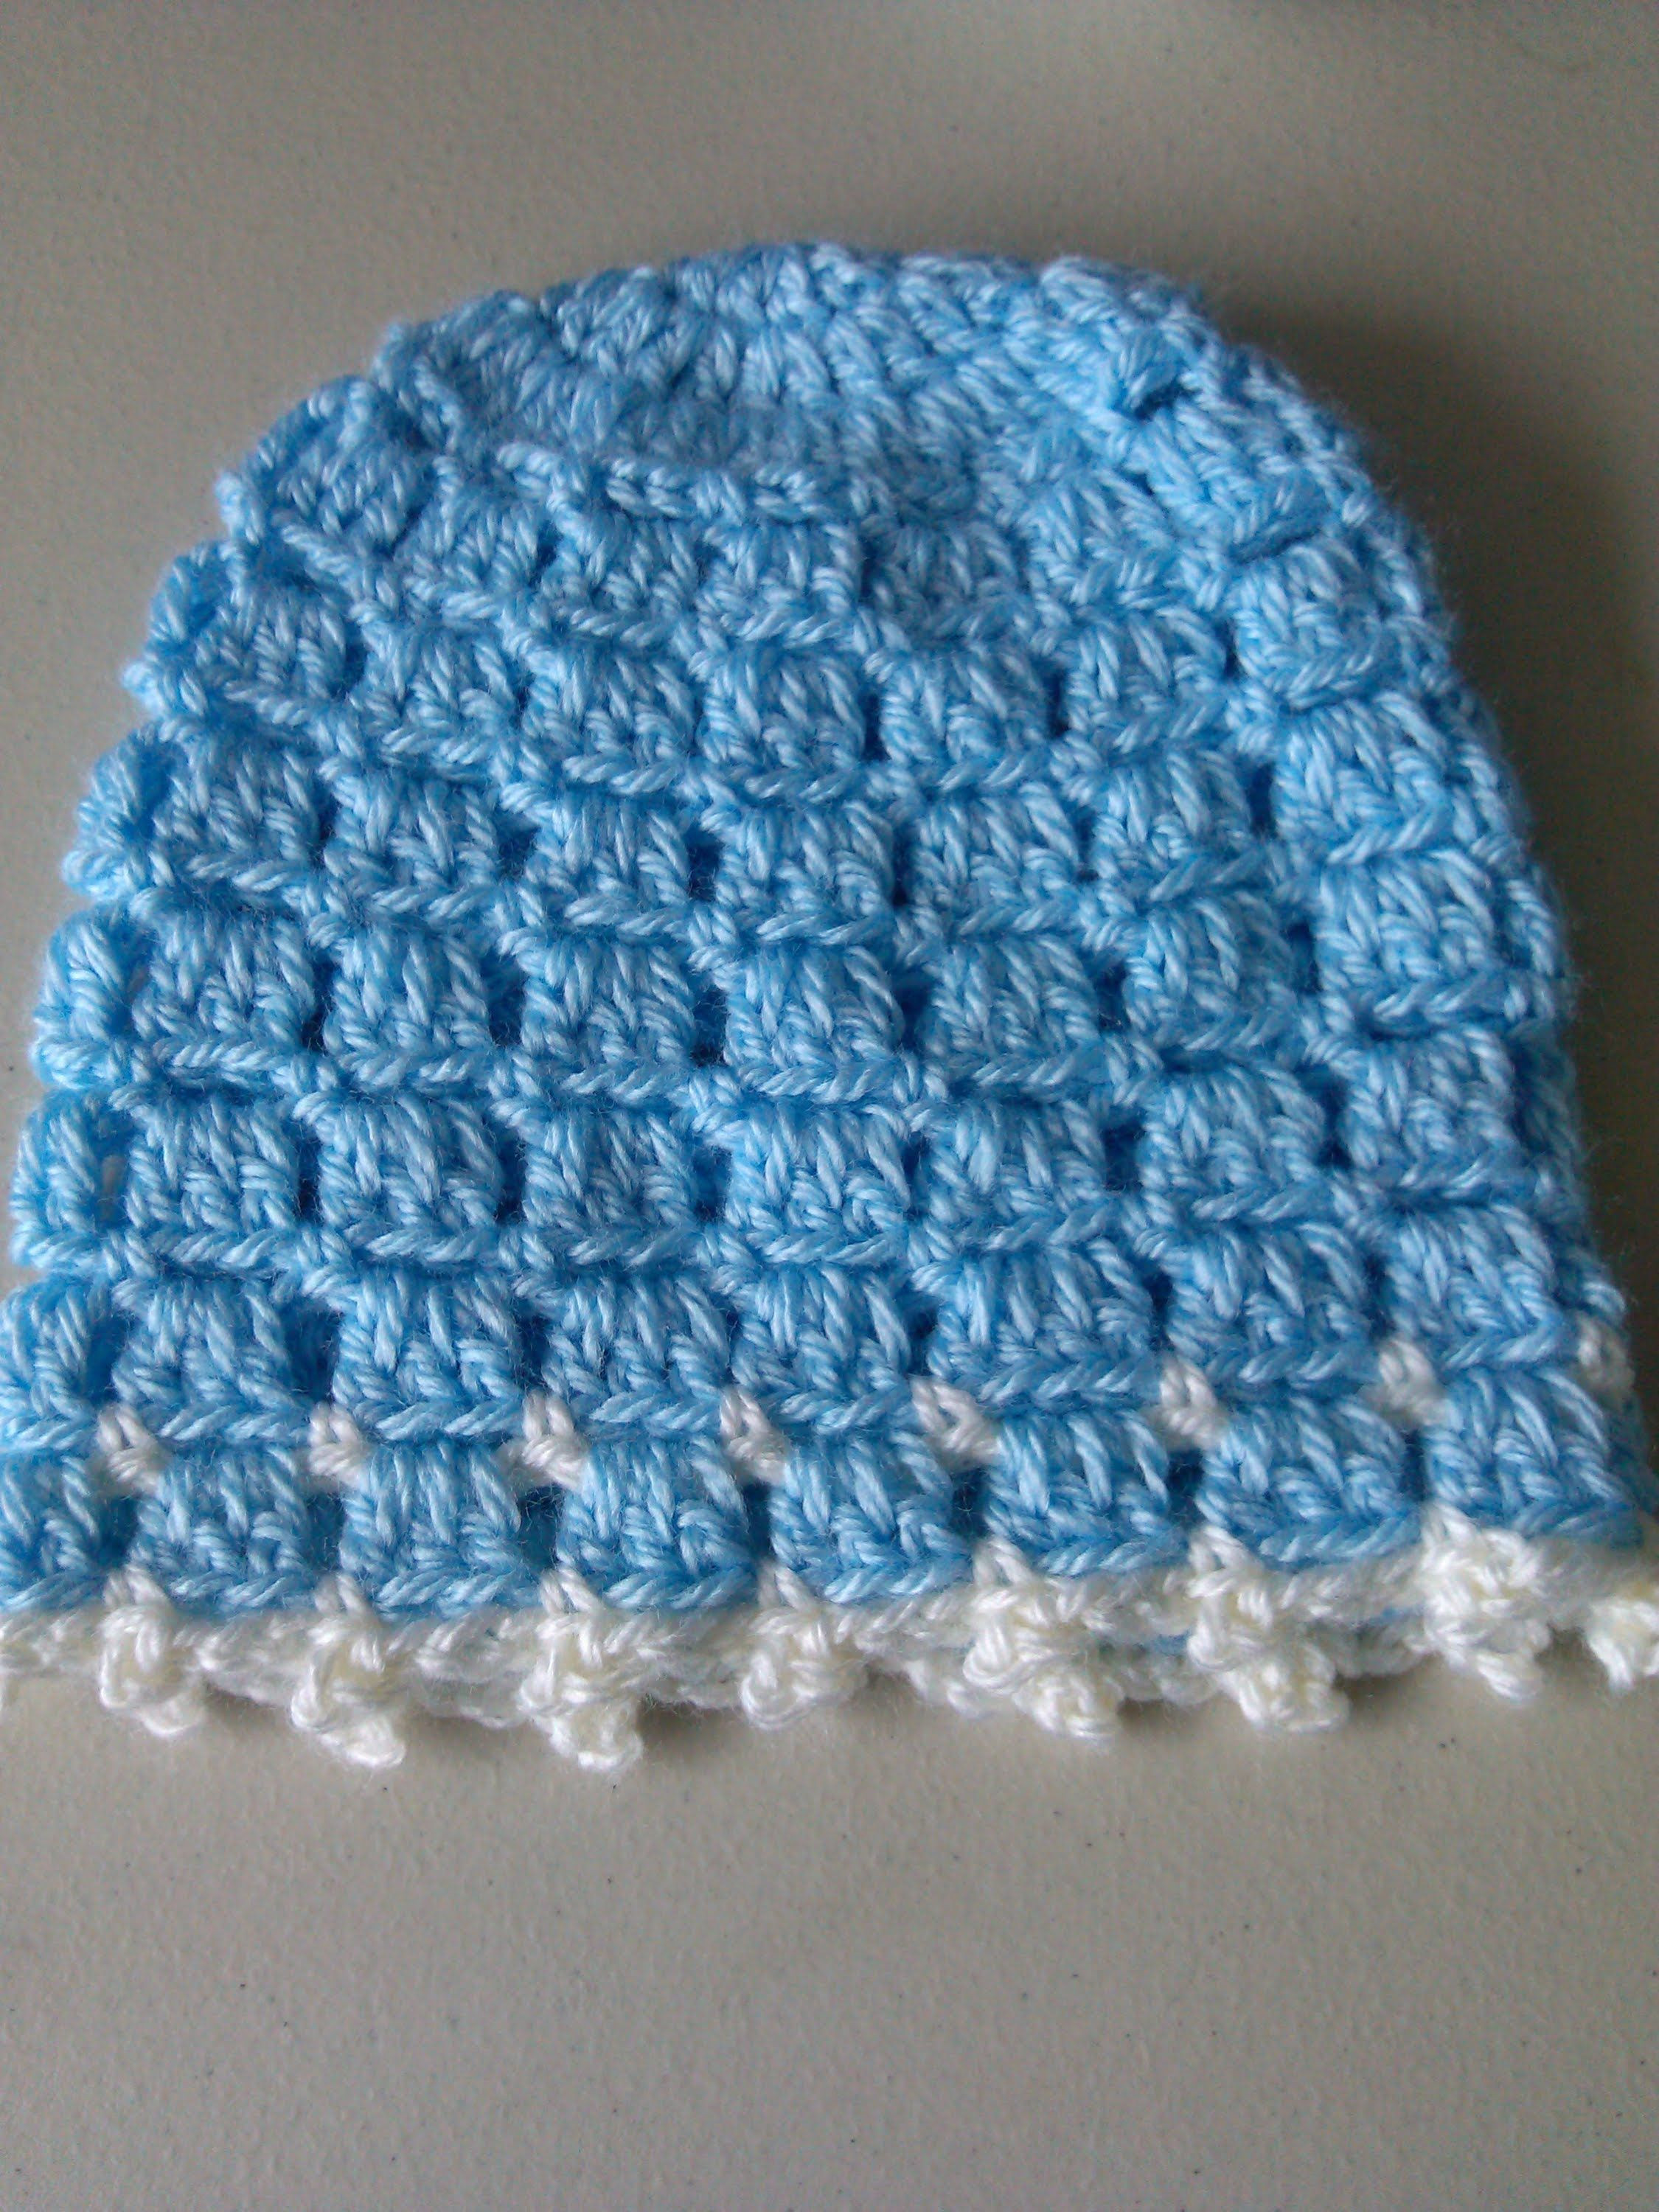 Best Of Crochet Easy and Unique Stitch Hat Tutorial Crochet Hat Tutorial Of Amazing 45 Ideas Crochet Hat Tutorial